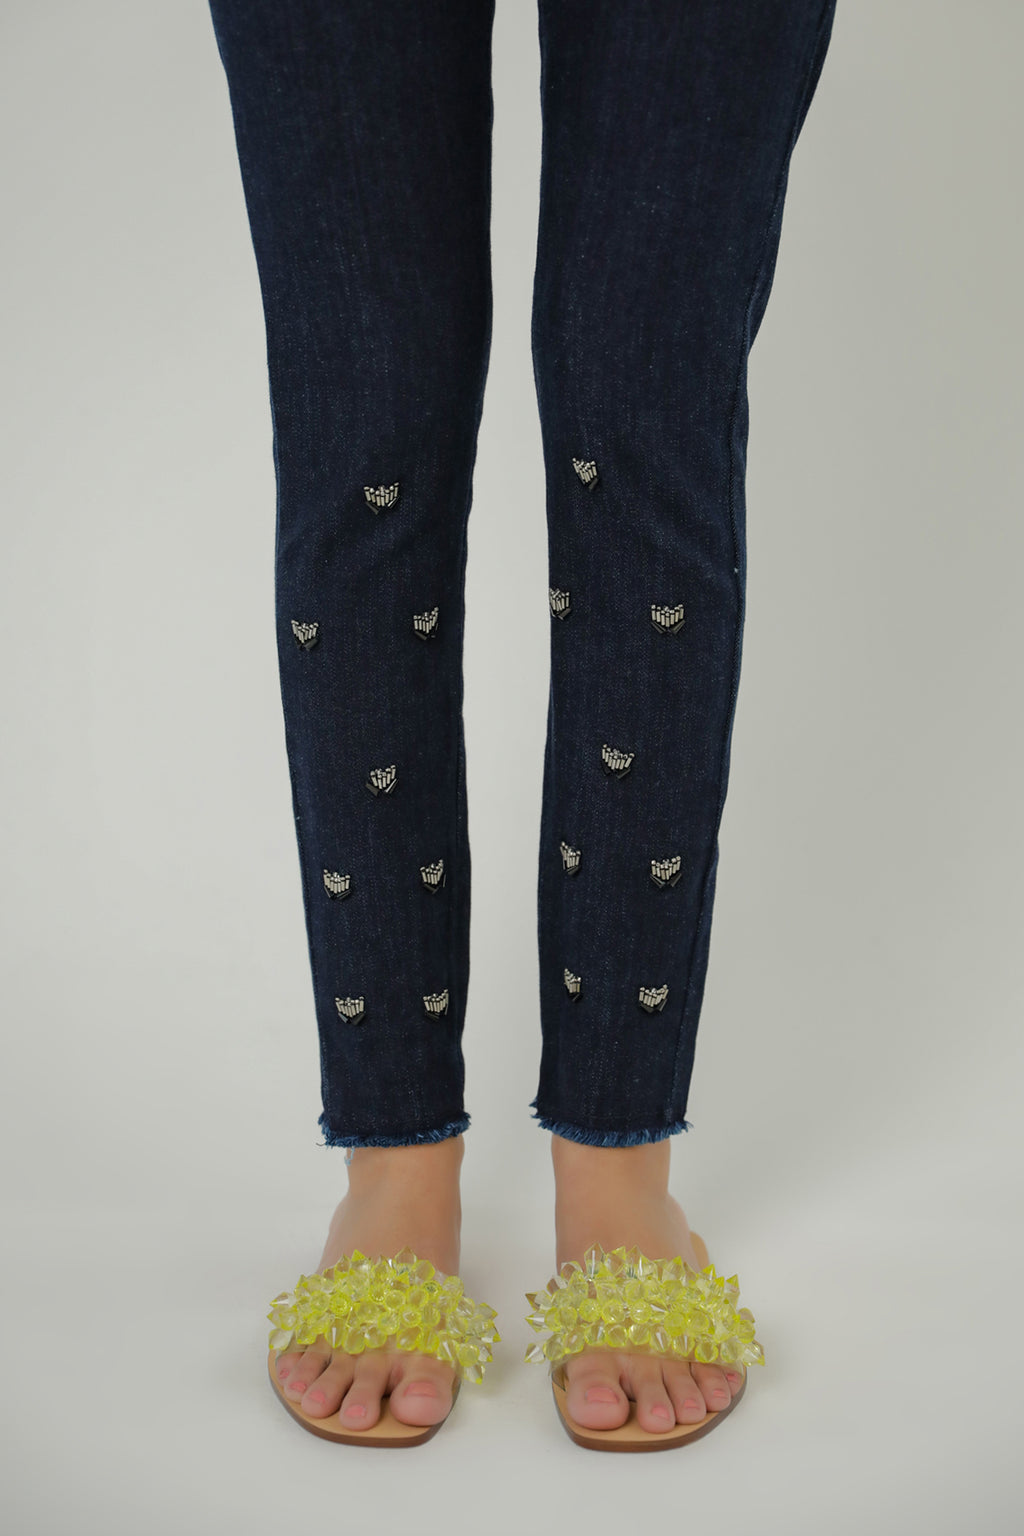 SKINNY JEANS (WBF111672) - Ethnic by Outfitters